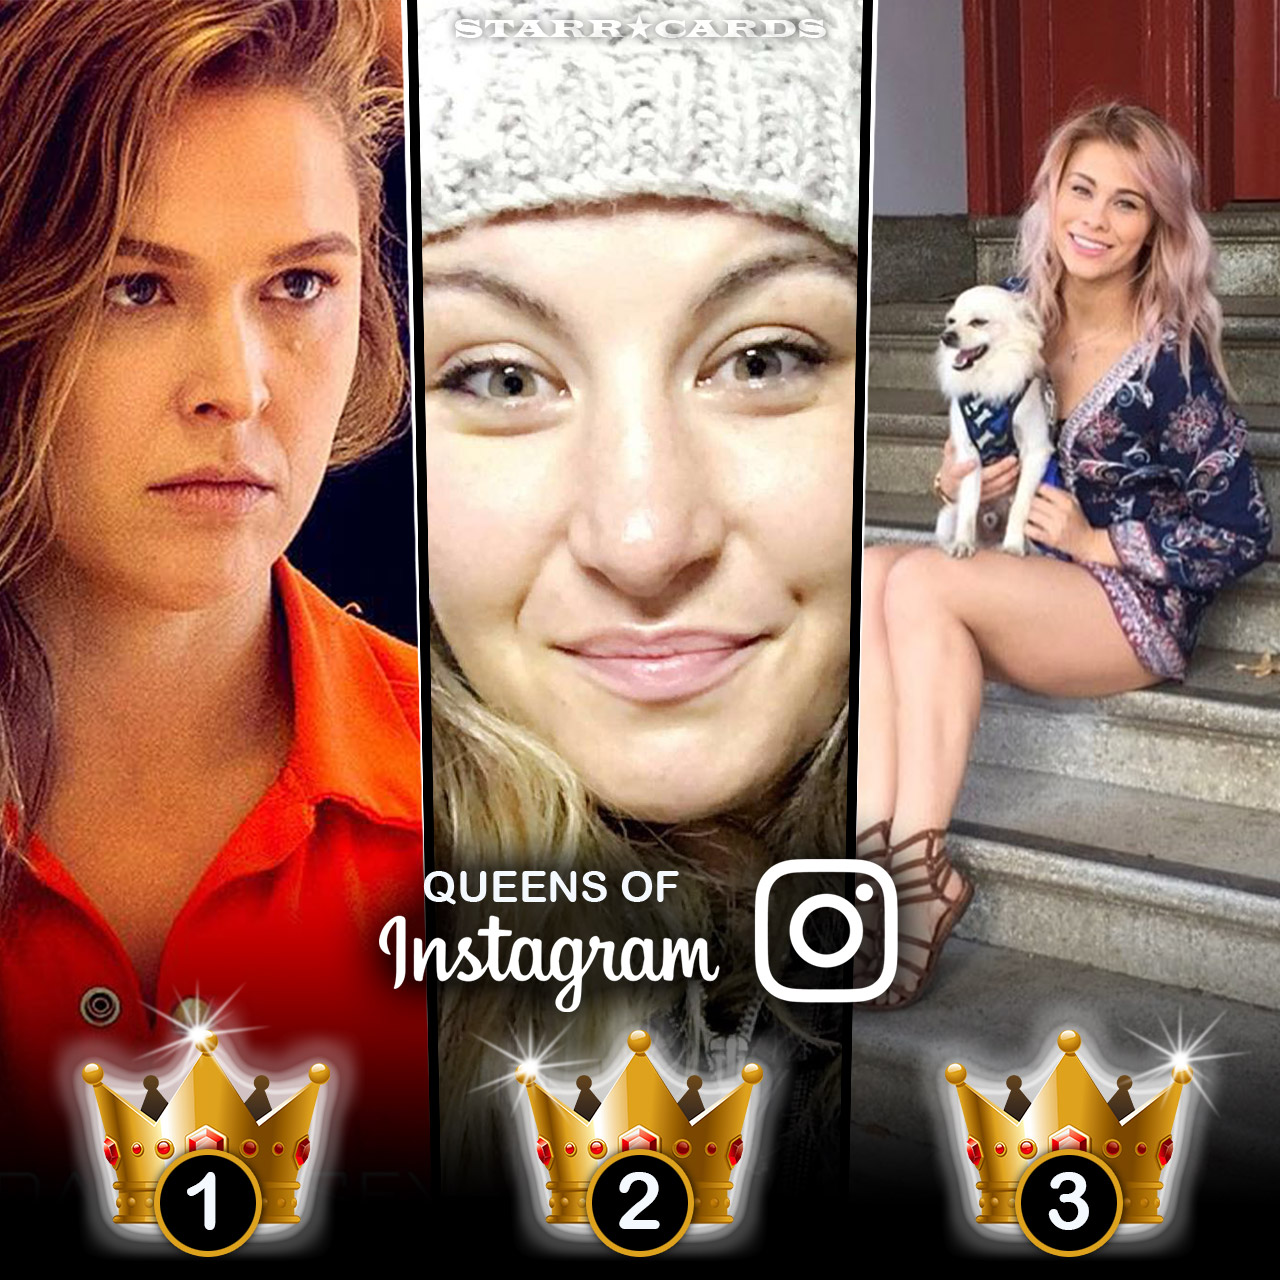 Queens of Instagram: Ronda Rousey, Miesha Tate, Holly Holm